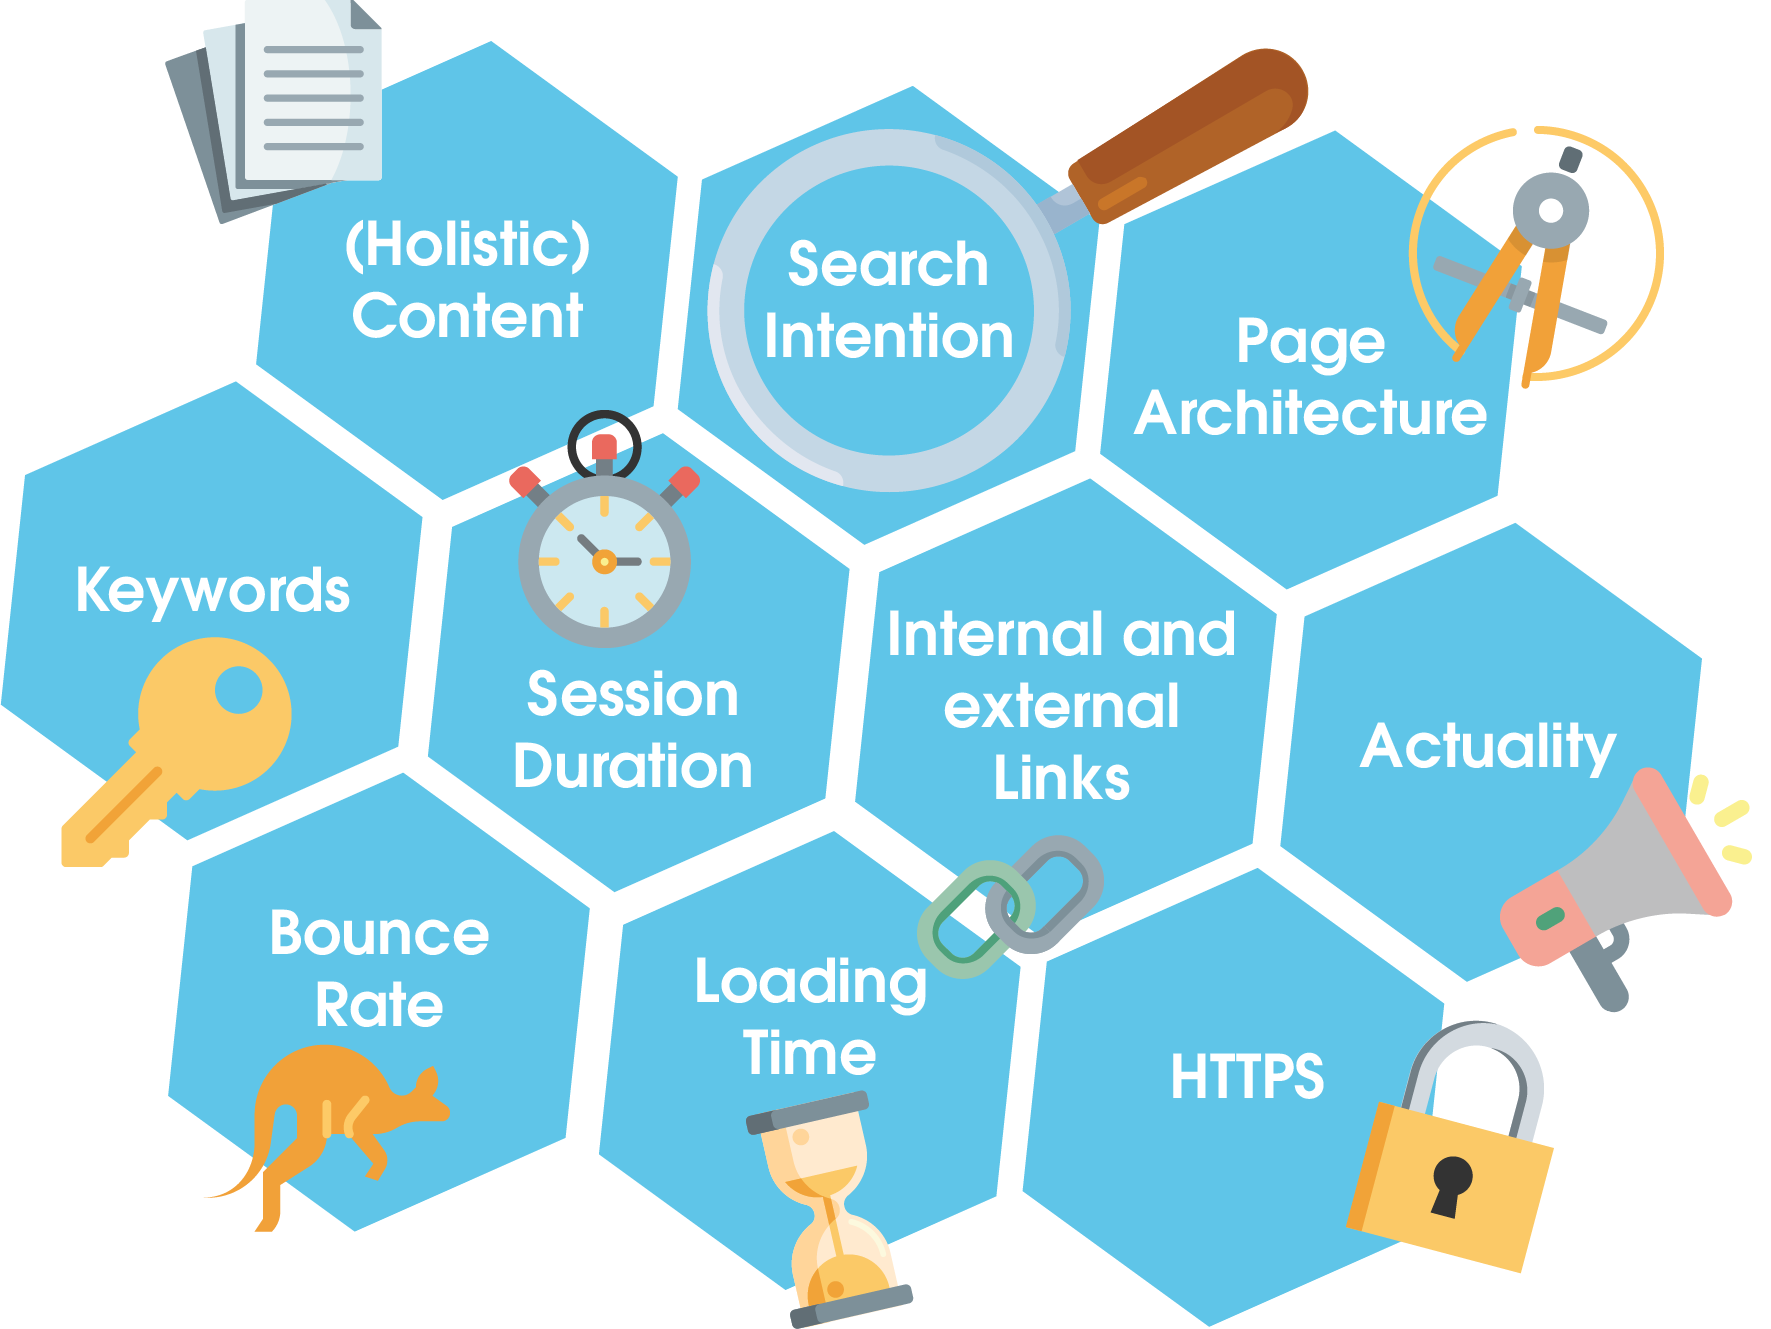 The chart shows the top 10 ranking factors at a glance. These include: - (Holistic) Content - Search intentions - Page architecture - Keywords - Dwell time - Internal and external links - Topicality - Bounce rate - Loading time - HTTPS